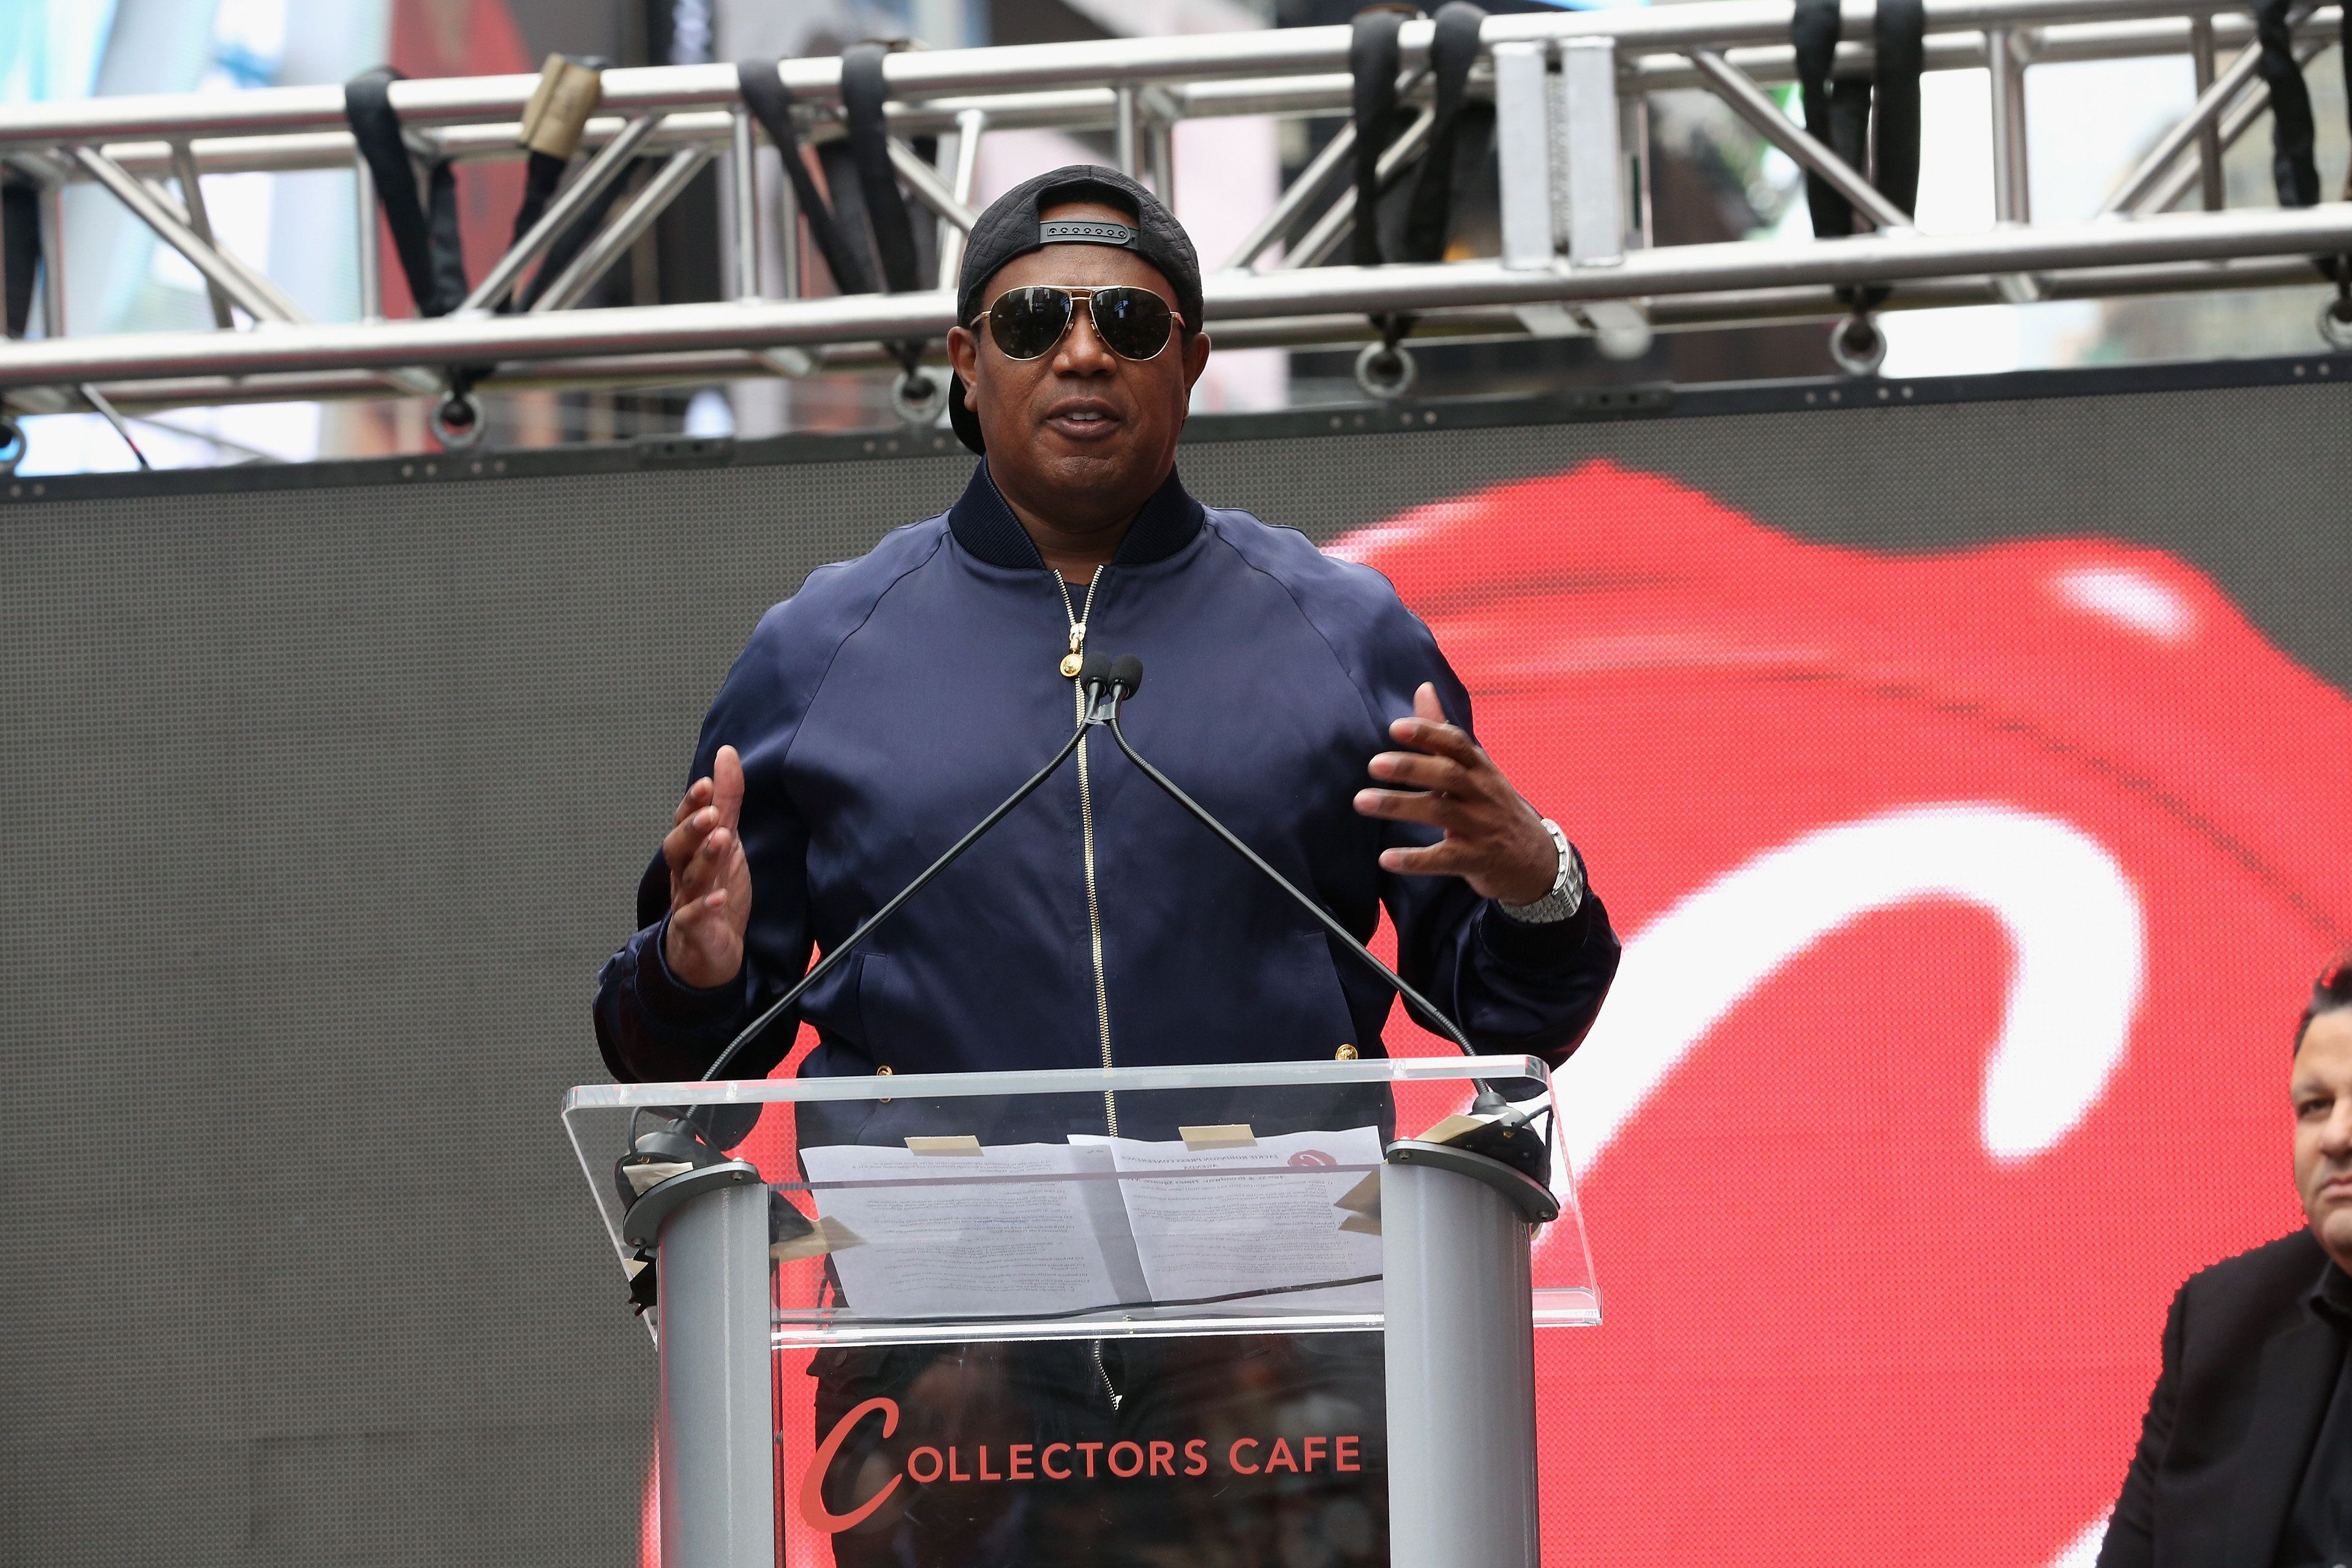 NEW YORK, NEW YORK - APRIL 11:  Master P attends Collectors Cafe Presents The Unveiling Of The Original, Long-Lost Jackie Robinson Baseball Contracts at Times Square on April 11, 2016 in New York City.  (Photo by Robin Marchant/Getty Images for Collectors Cafe)